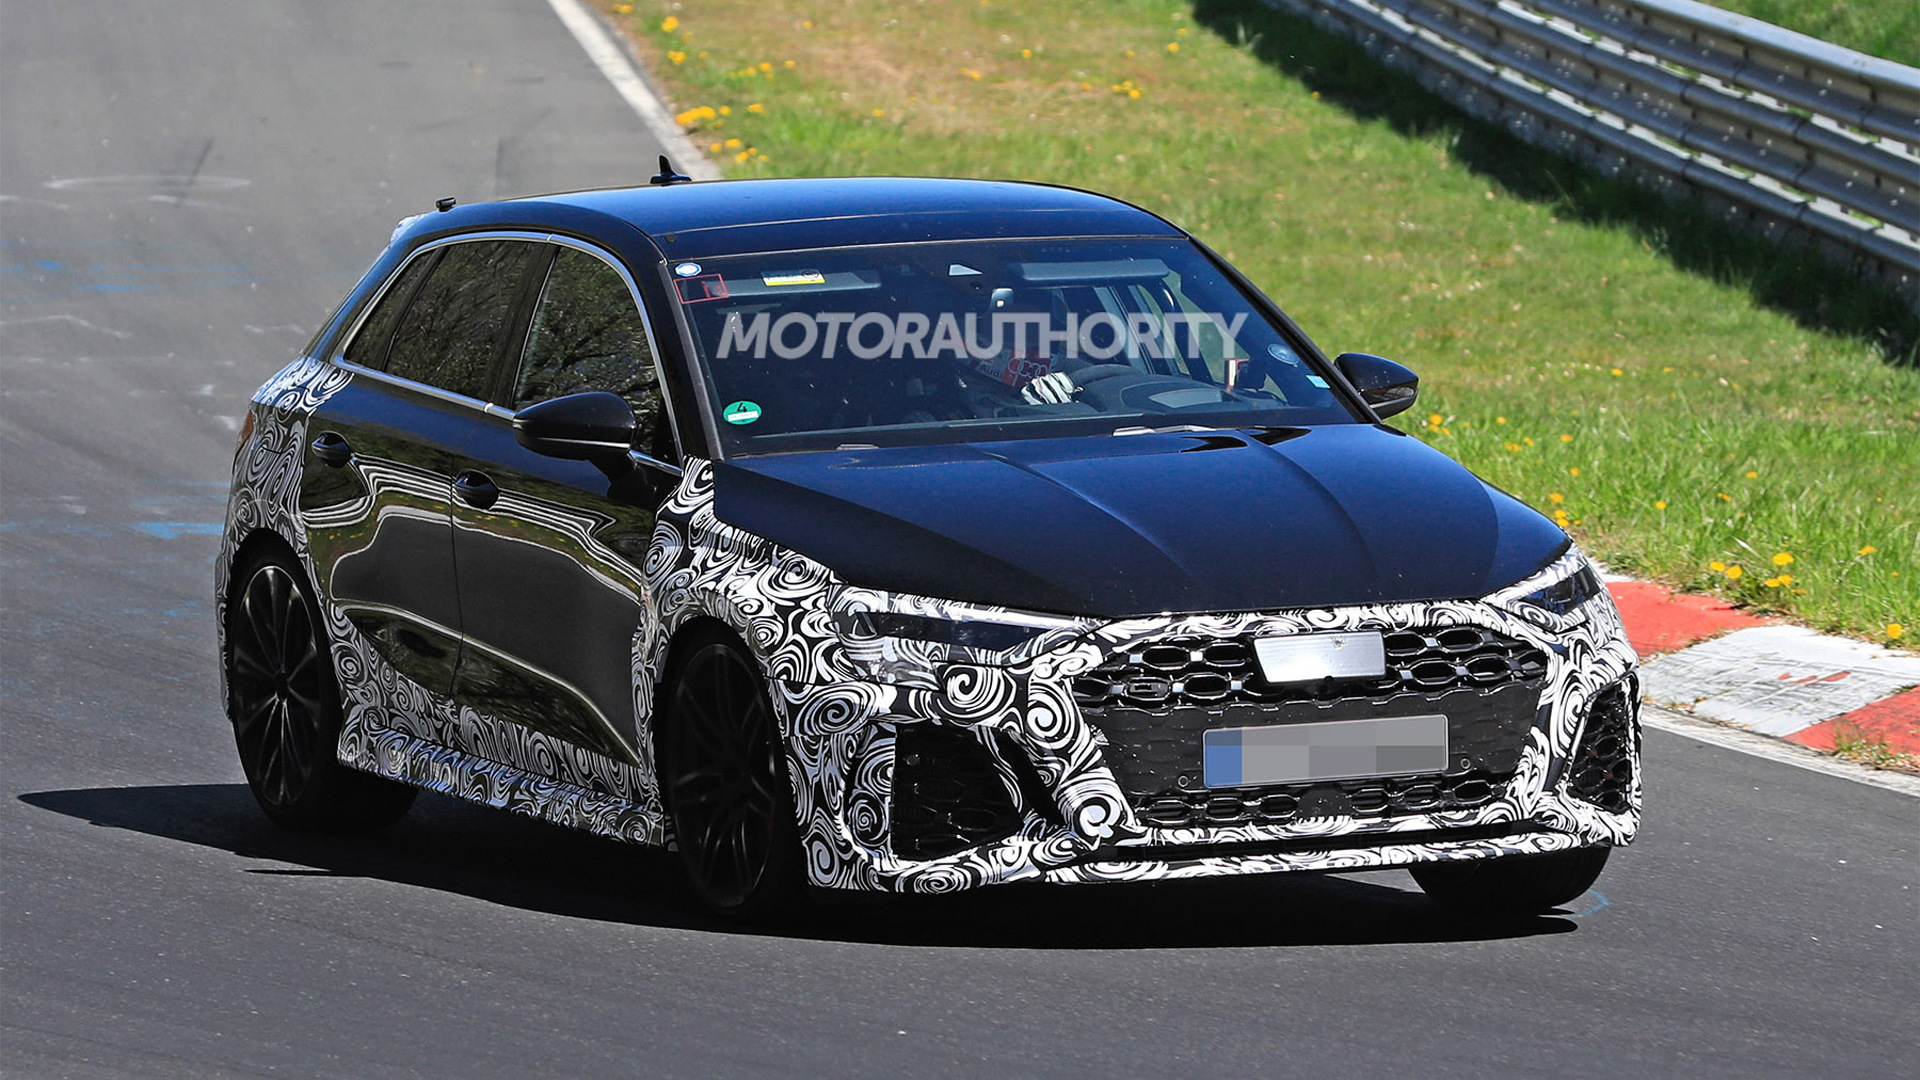 2022 Audi RS 3 Sportback spy shots - Photo credit: S. Baldauf/SB-Medien